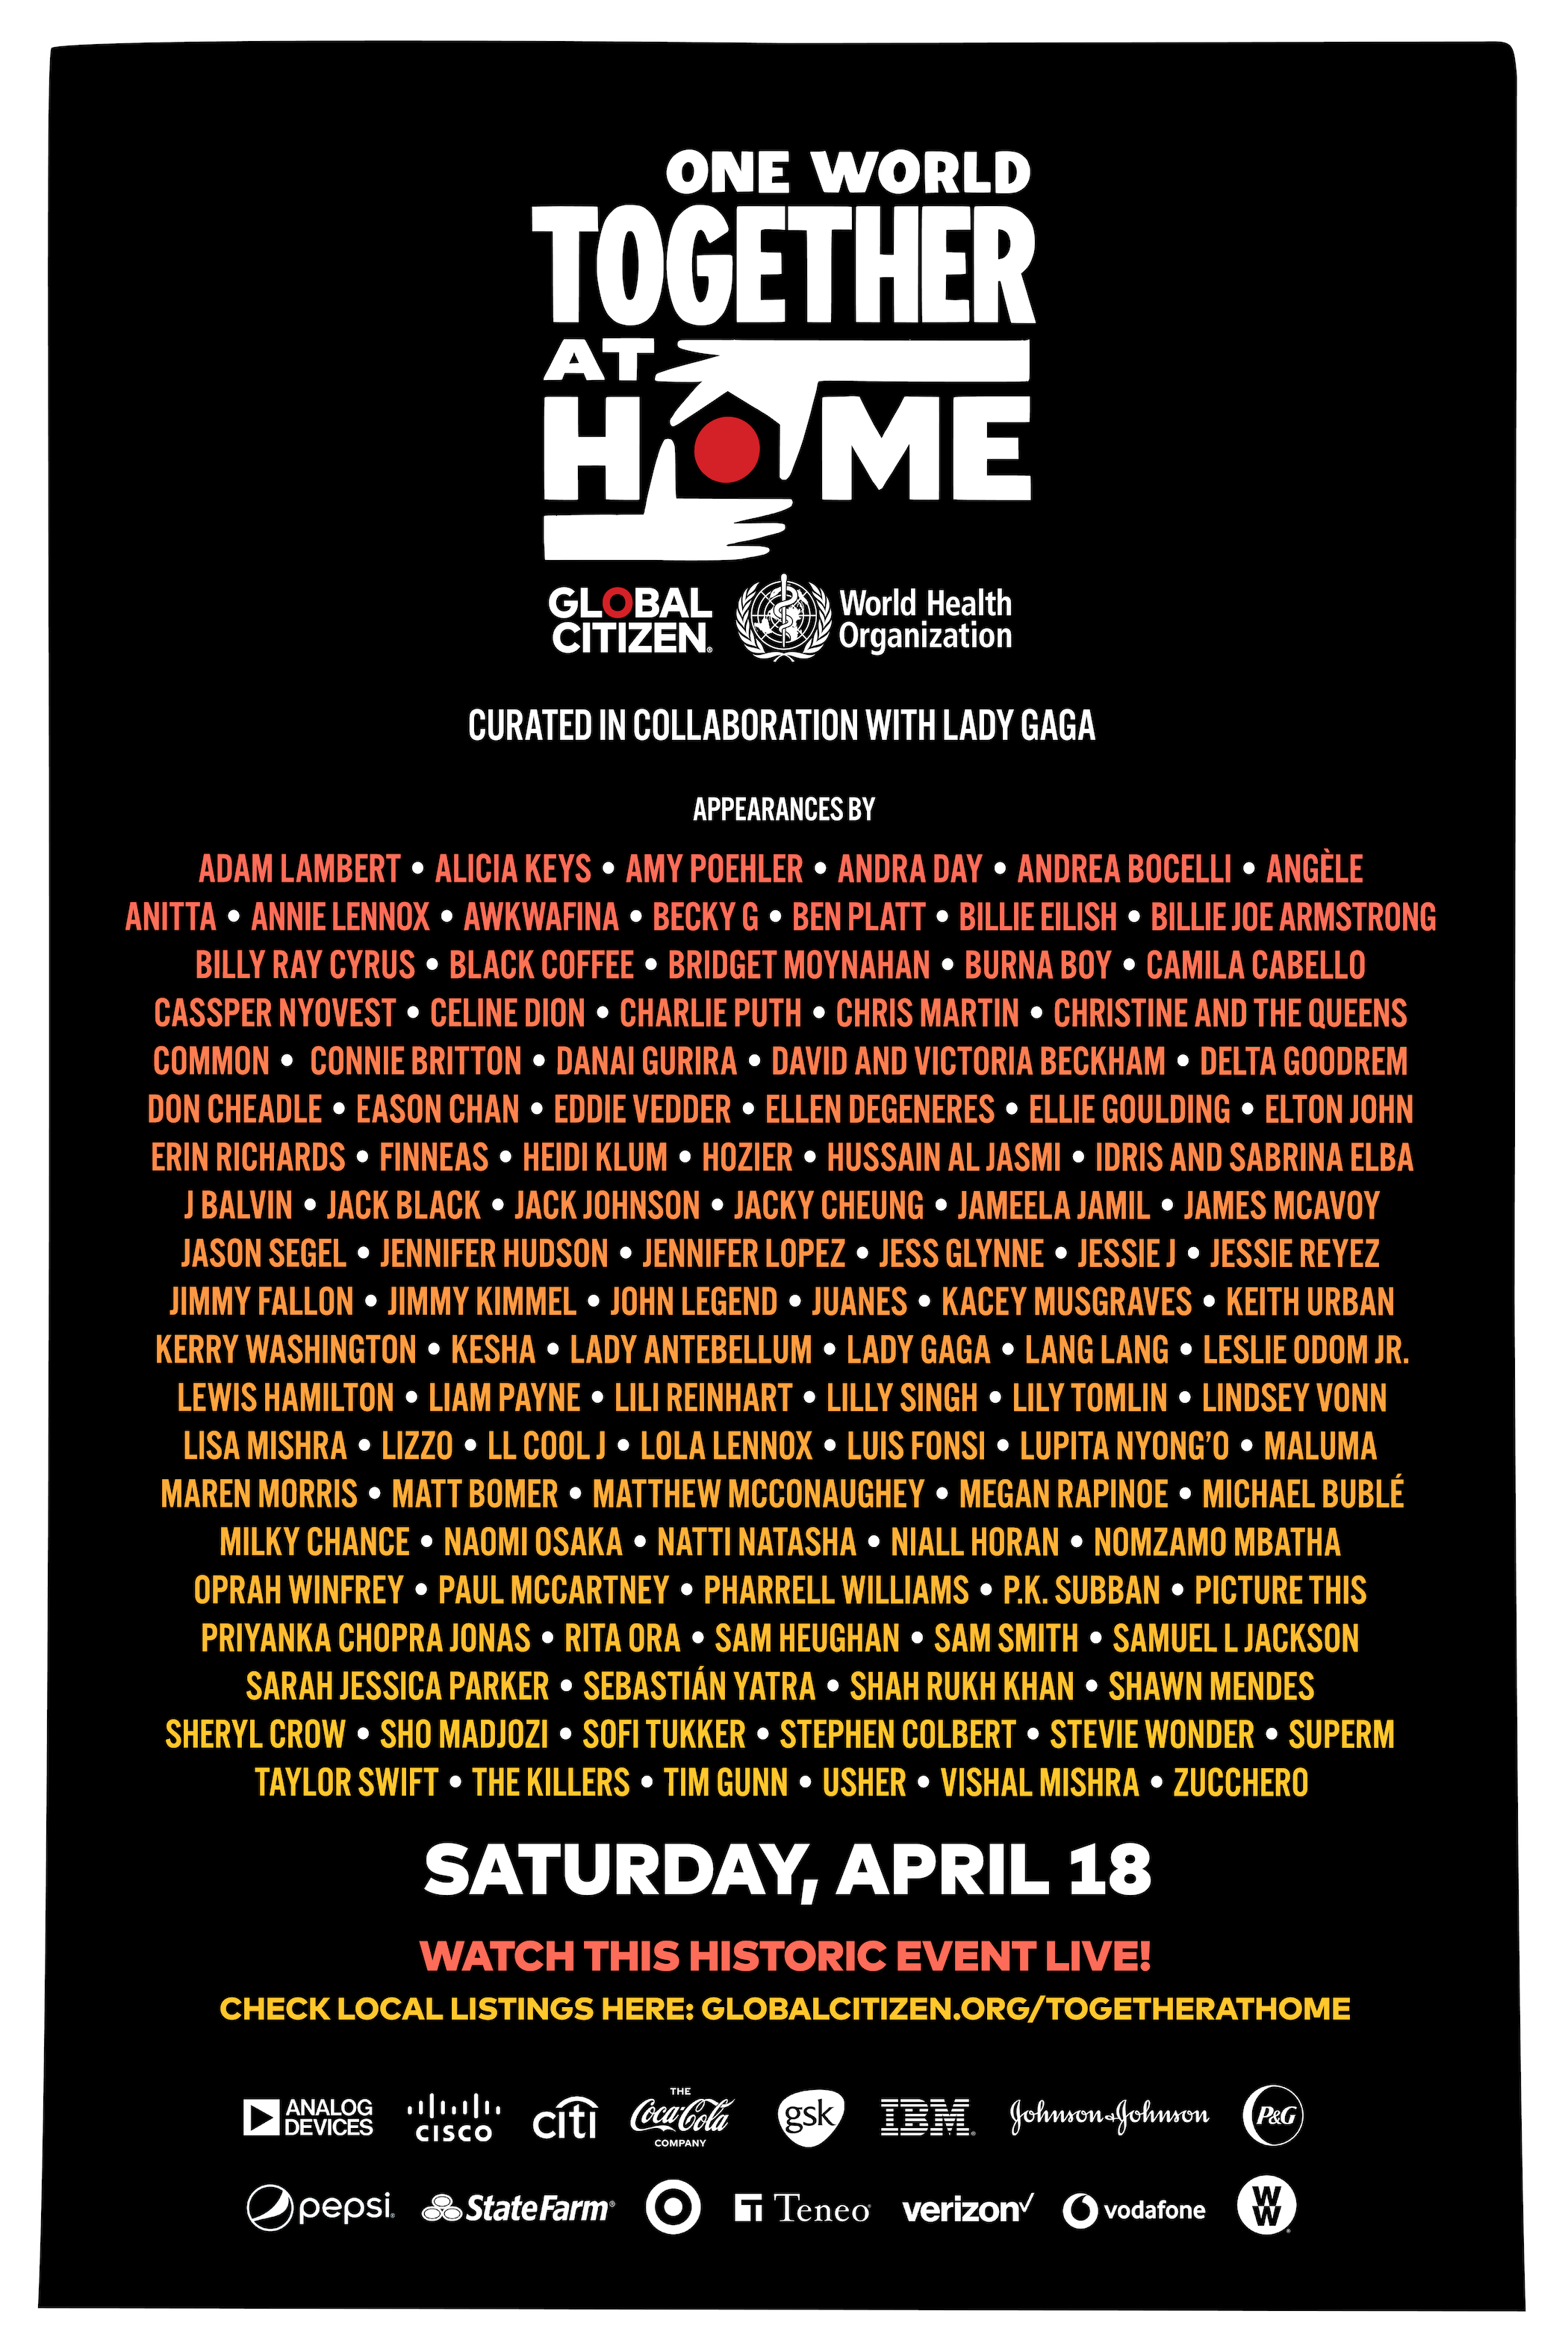 'One World: Together At Home' Adds 70+ Artists Including the Rolling Stones to Historic Lineup